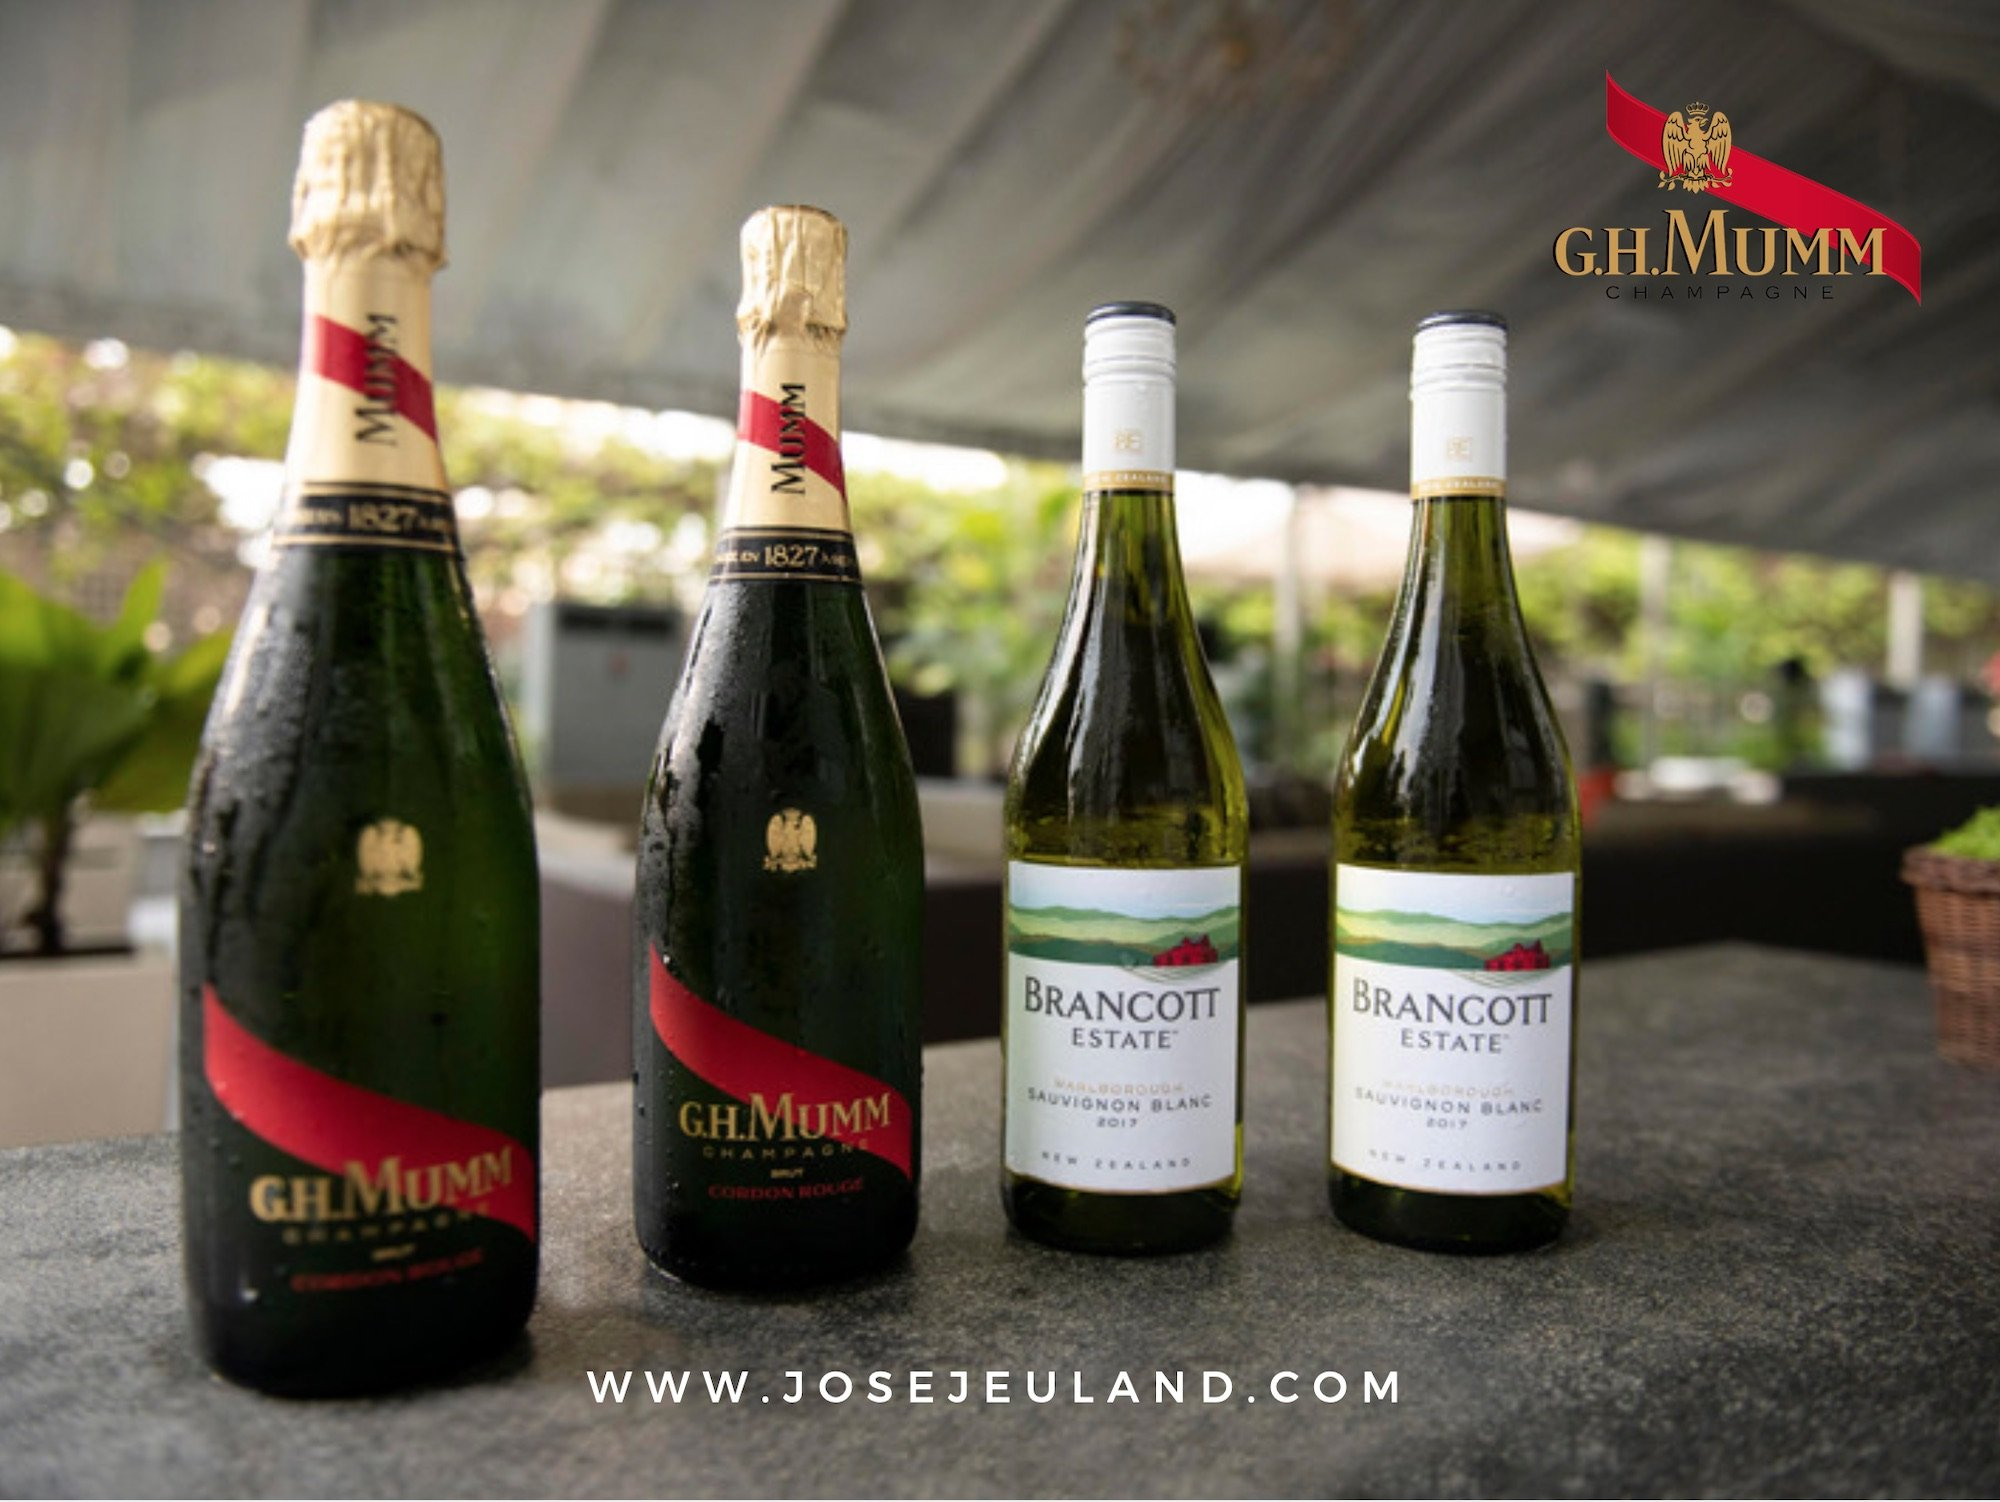 G.H.MUMM, Champagne, Pernod, Ricard, Photography, Exhibition, Jose, Jeuland, Singapore, Photographer